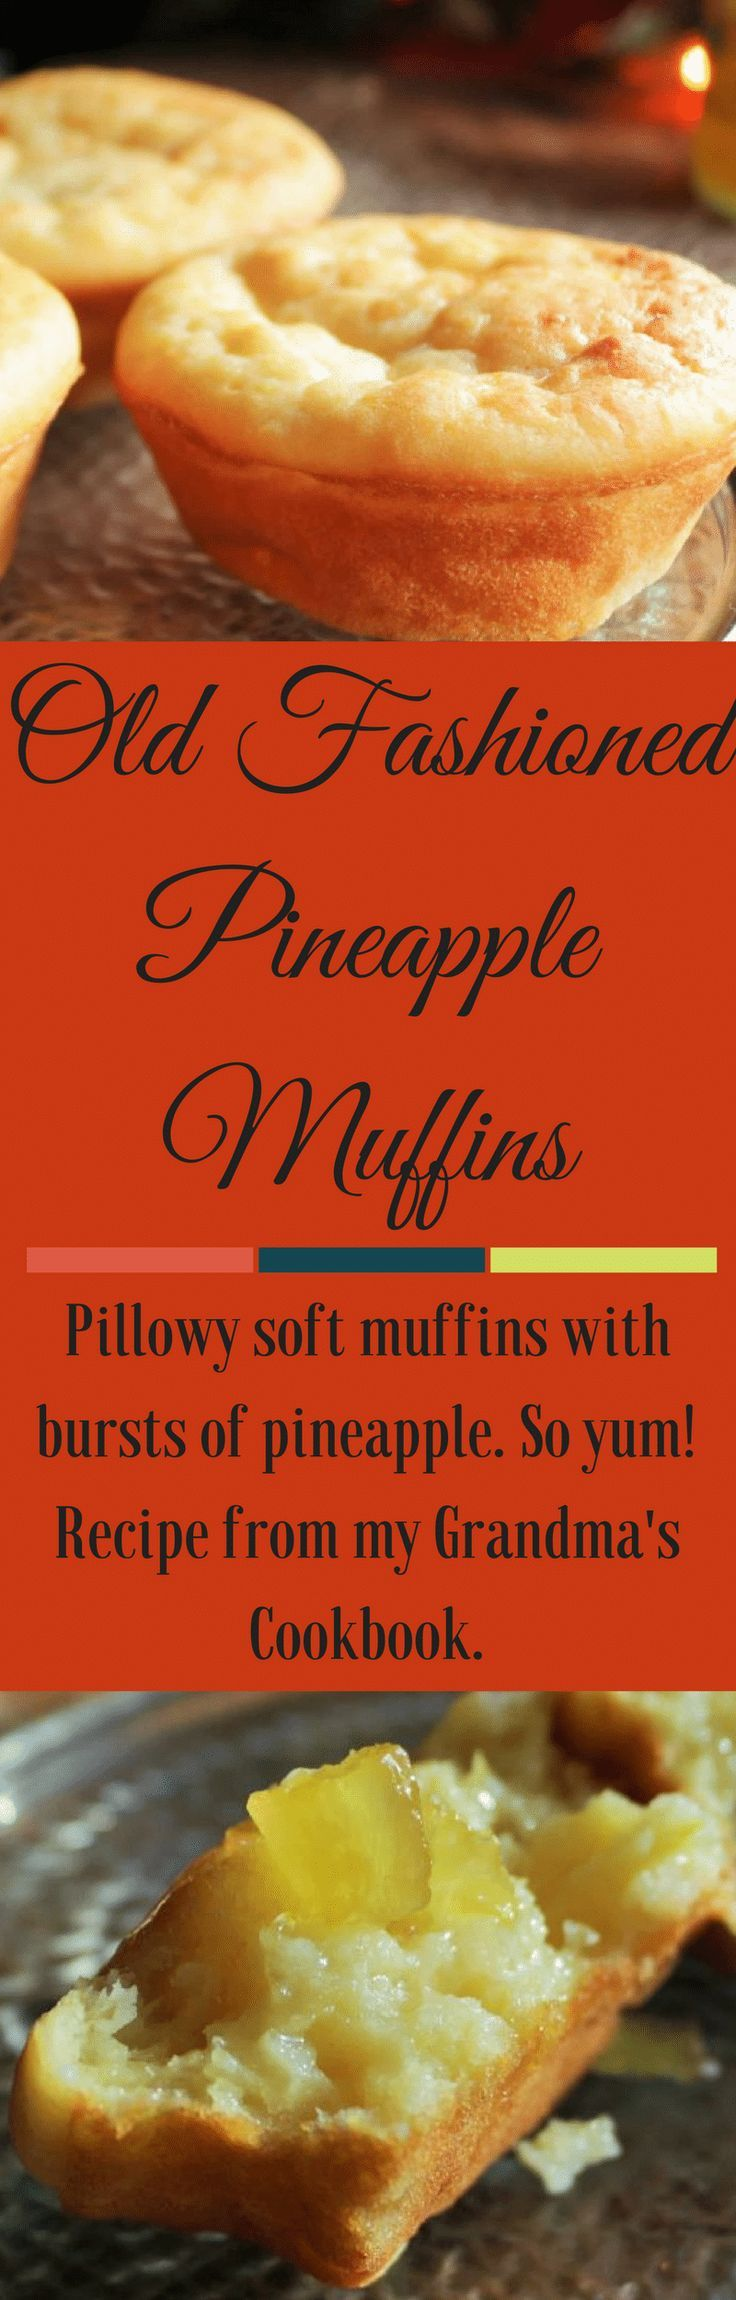 Old Fashioned Pineapple Muffins are pillowy soft and tender. Burst of pineapplerecipes flavor wake up the flavor. Great plain, with butter or jam. #muffins #breakfasttime #breakfast #muffinrecipe #vintagerecipe #pineapplerecipes #easyrecipe